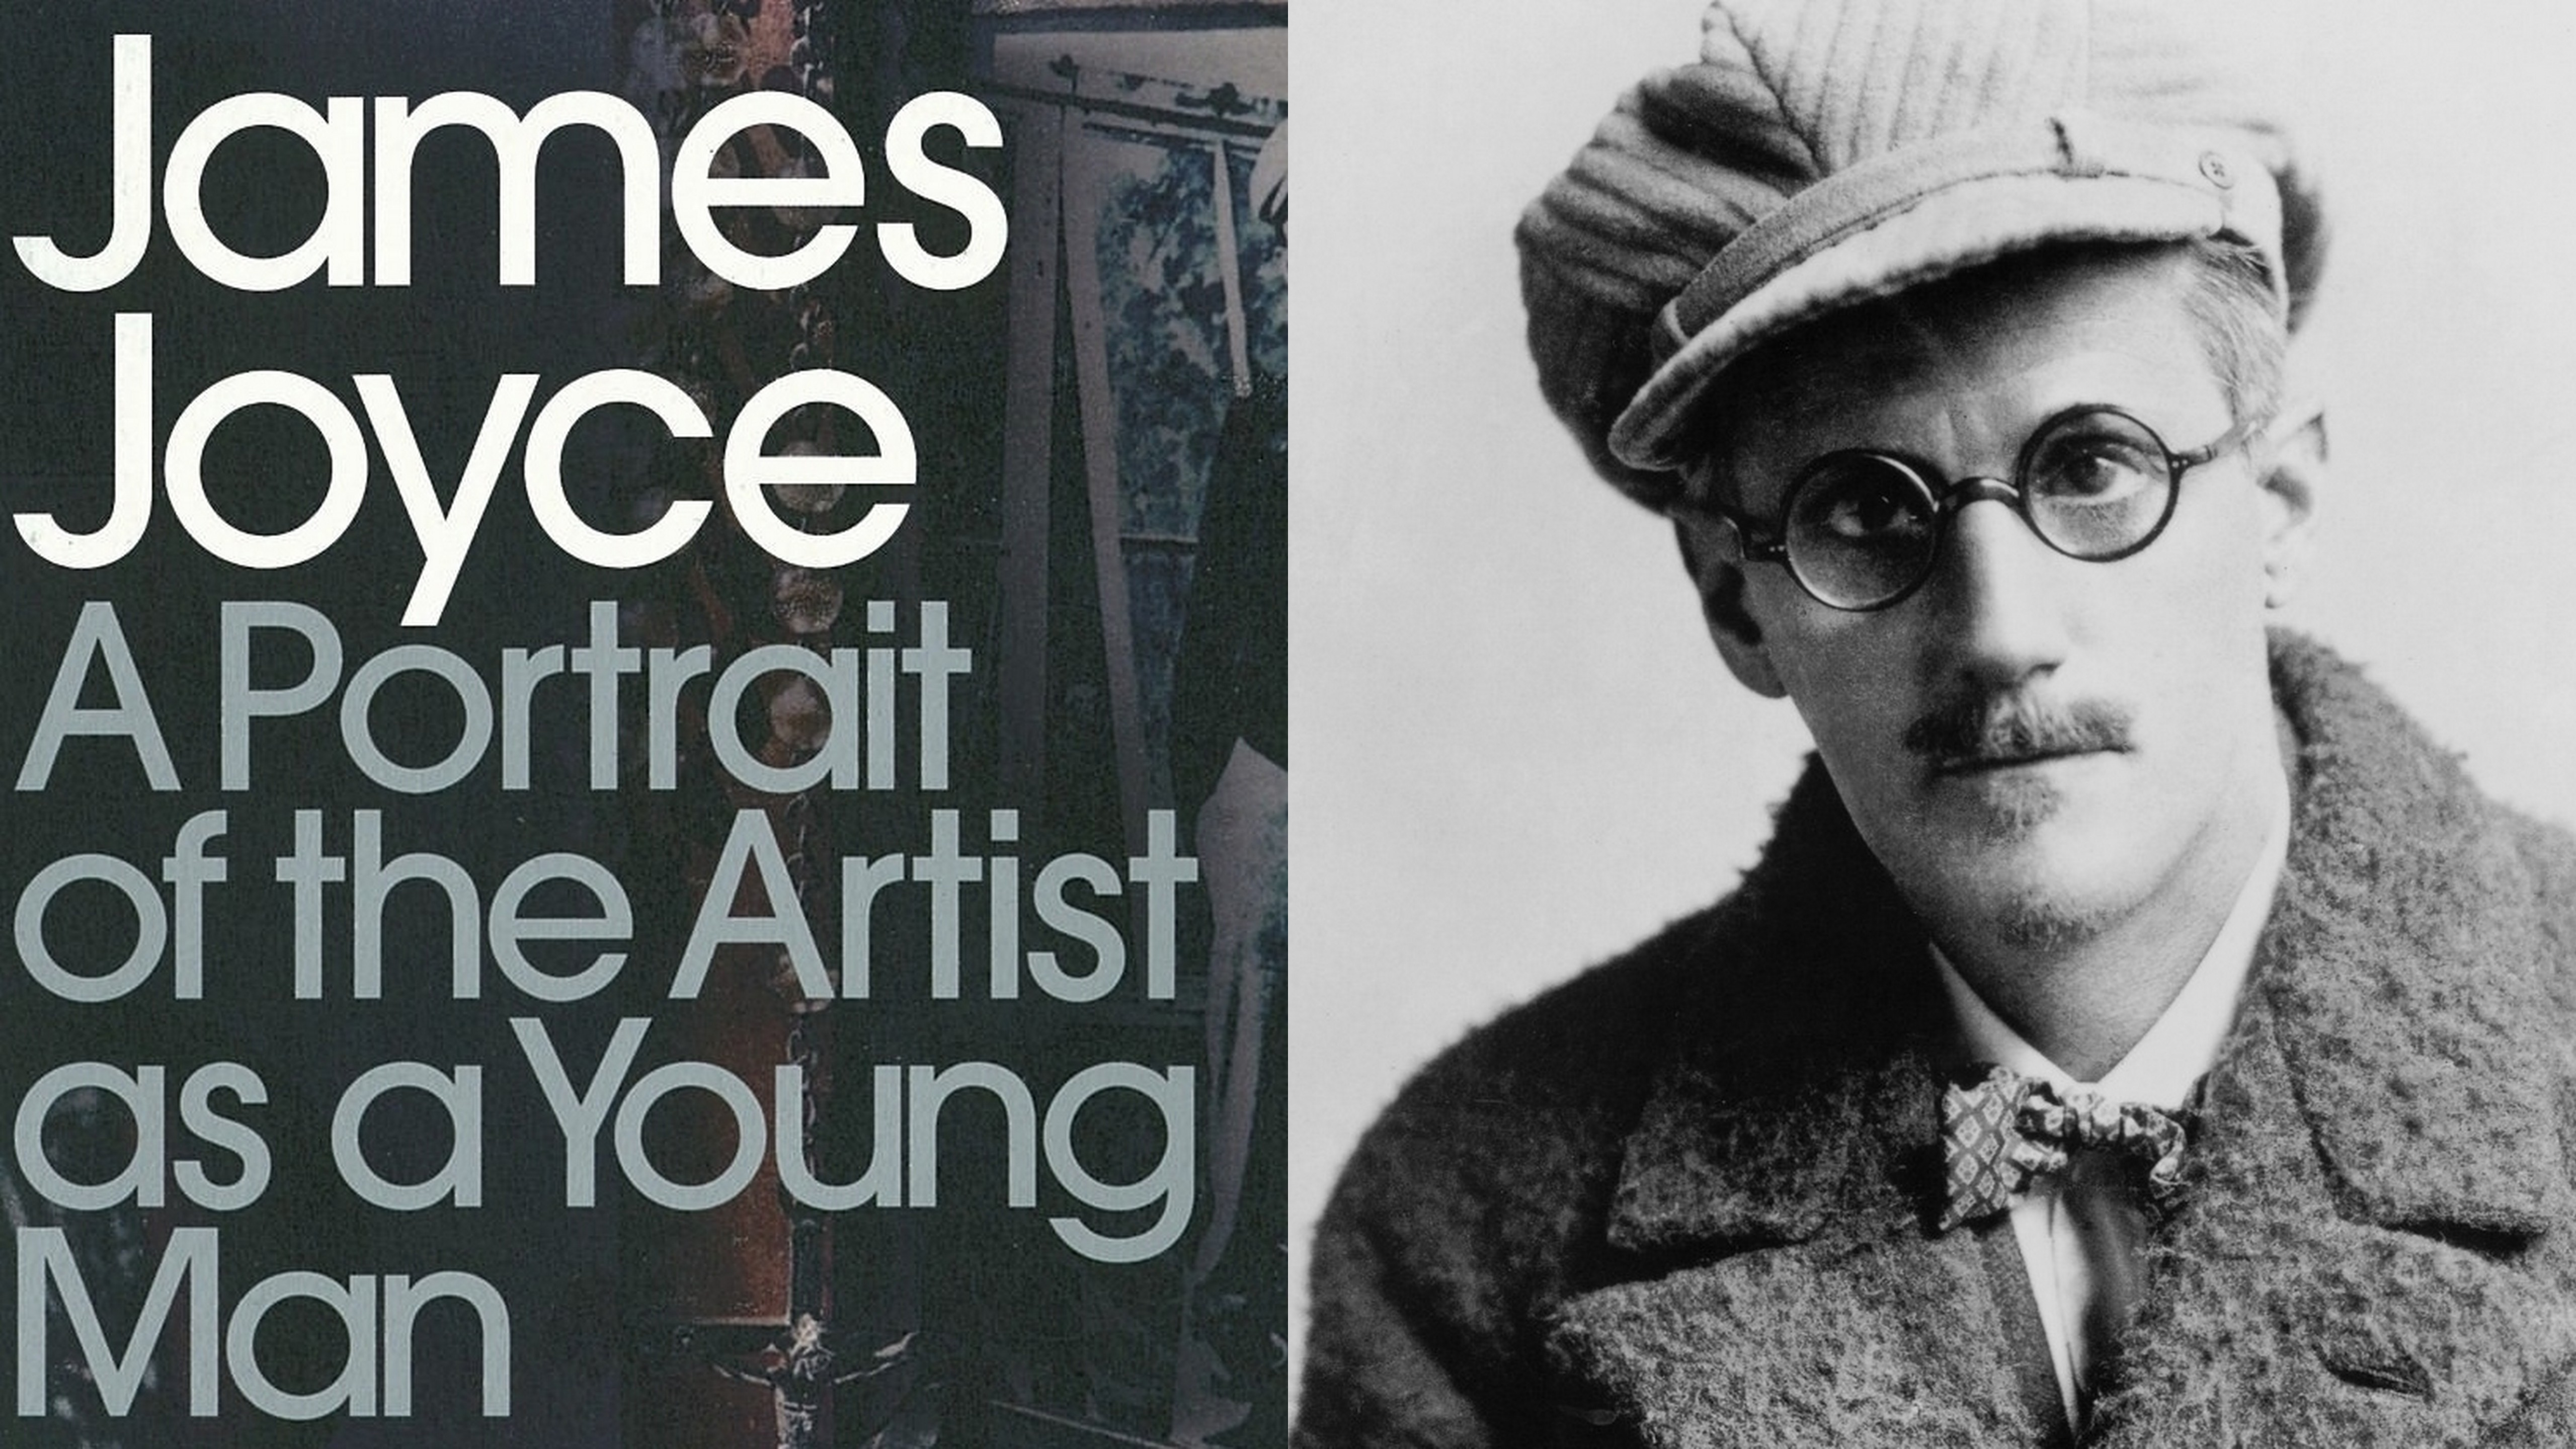 Give a critique of James Joyce's Portrait of the Artist as a Young Man.